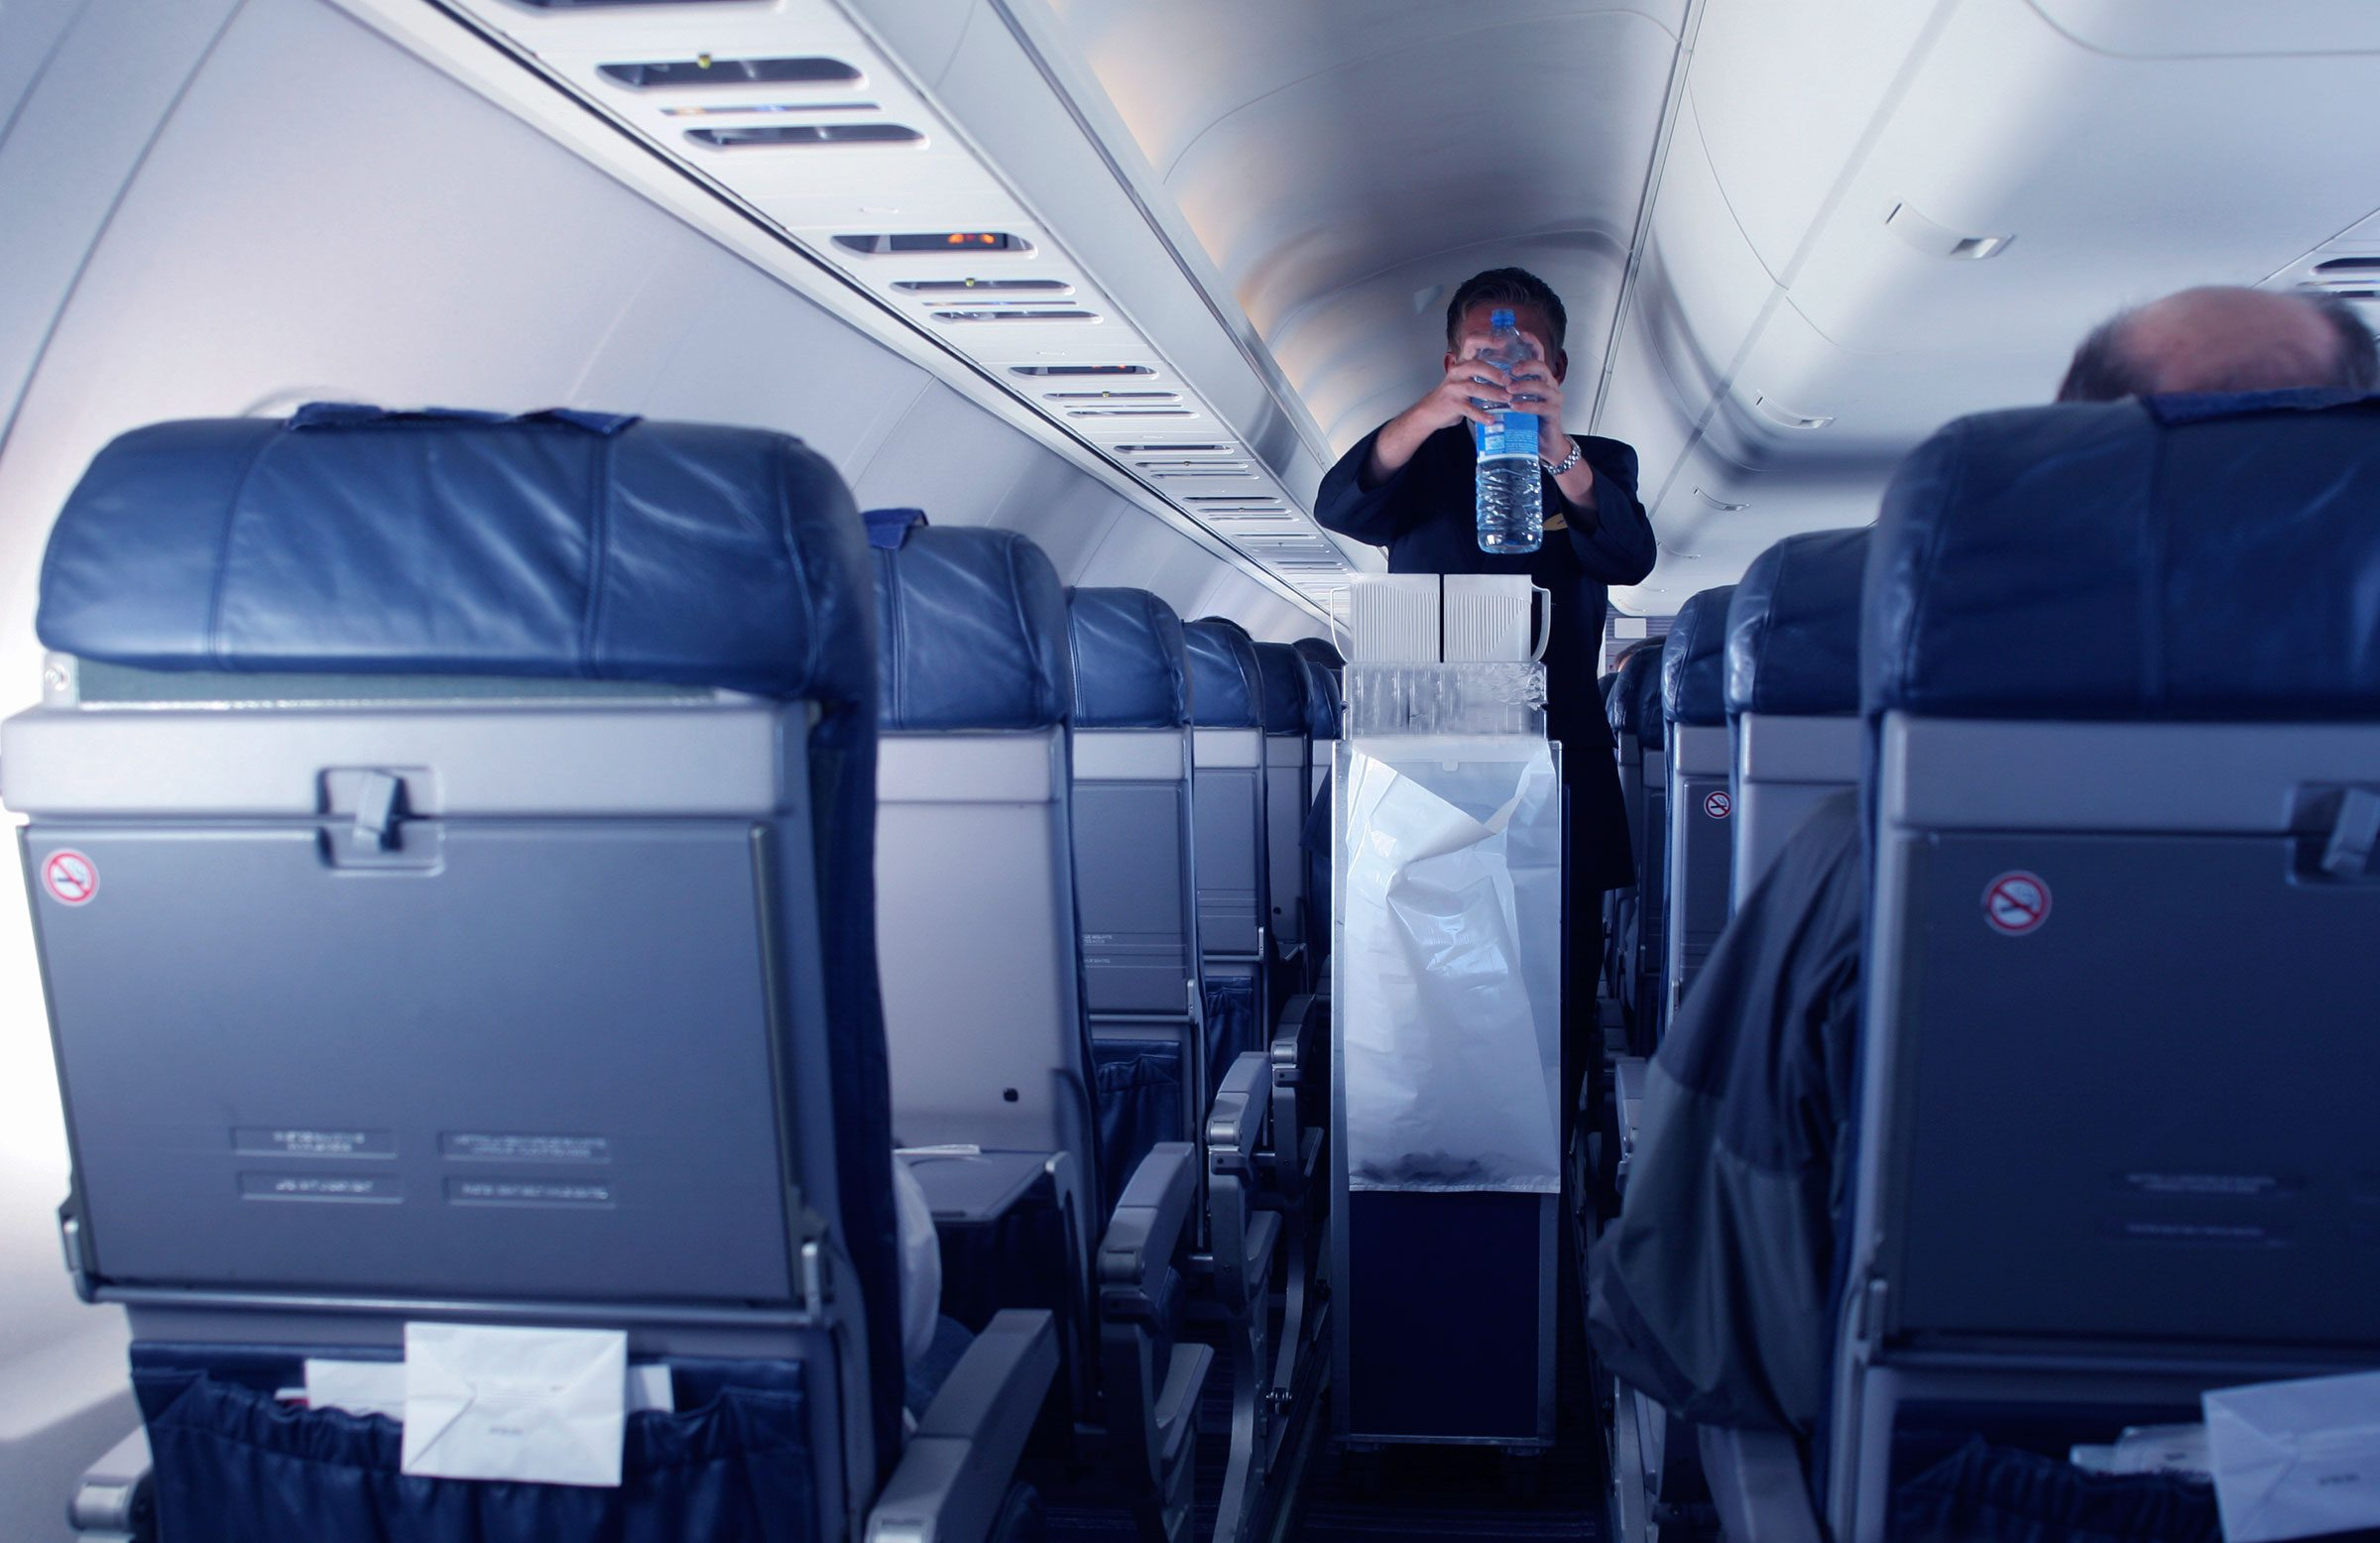 Gate agents flight attendants t gate airline humor and for Delta airlines dogs in cabin